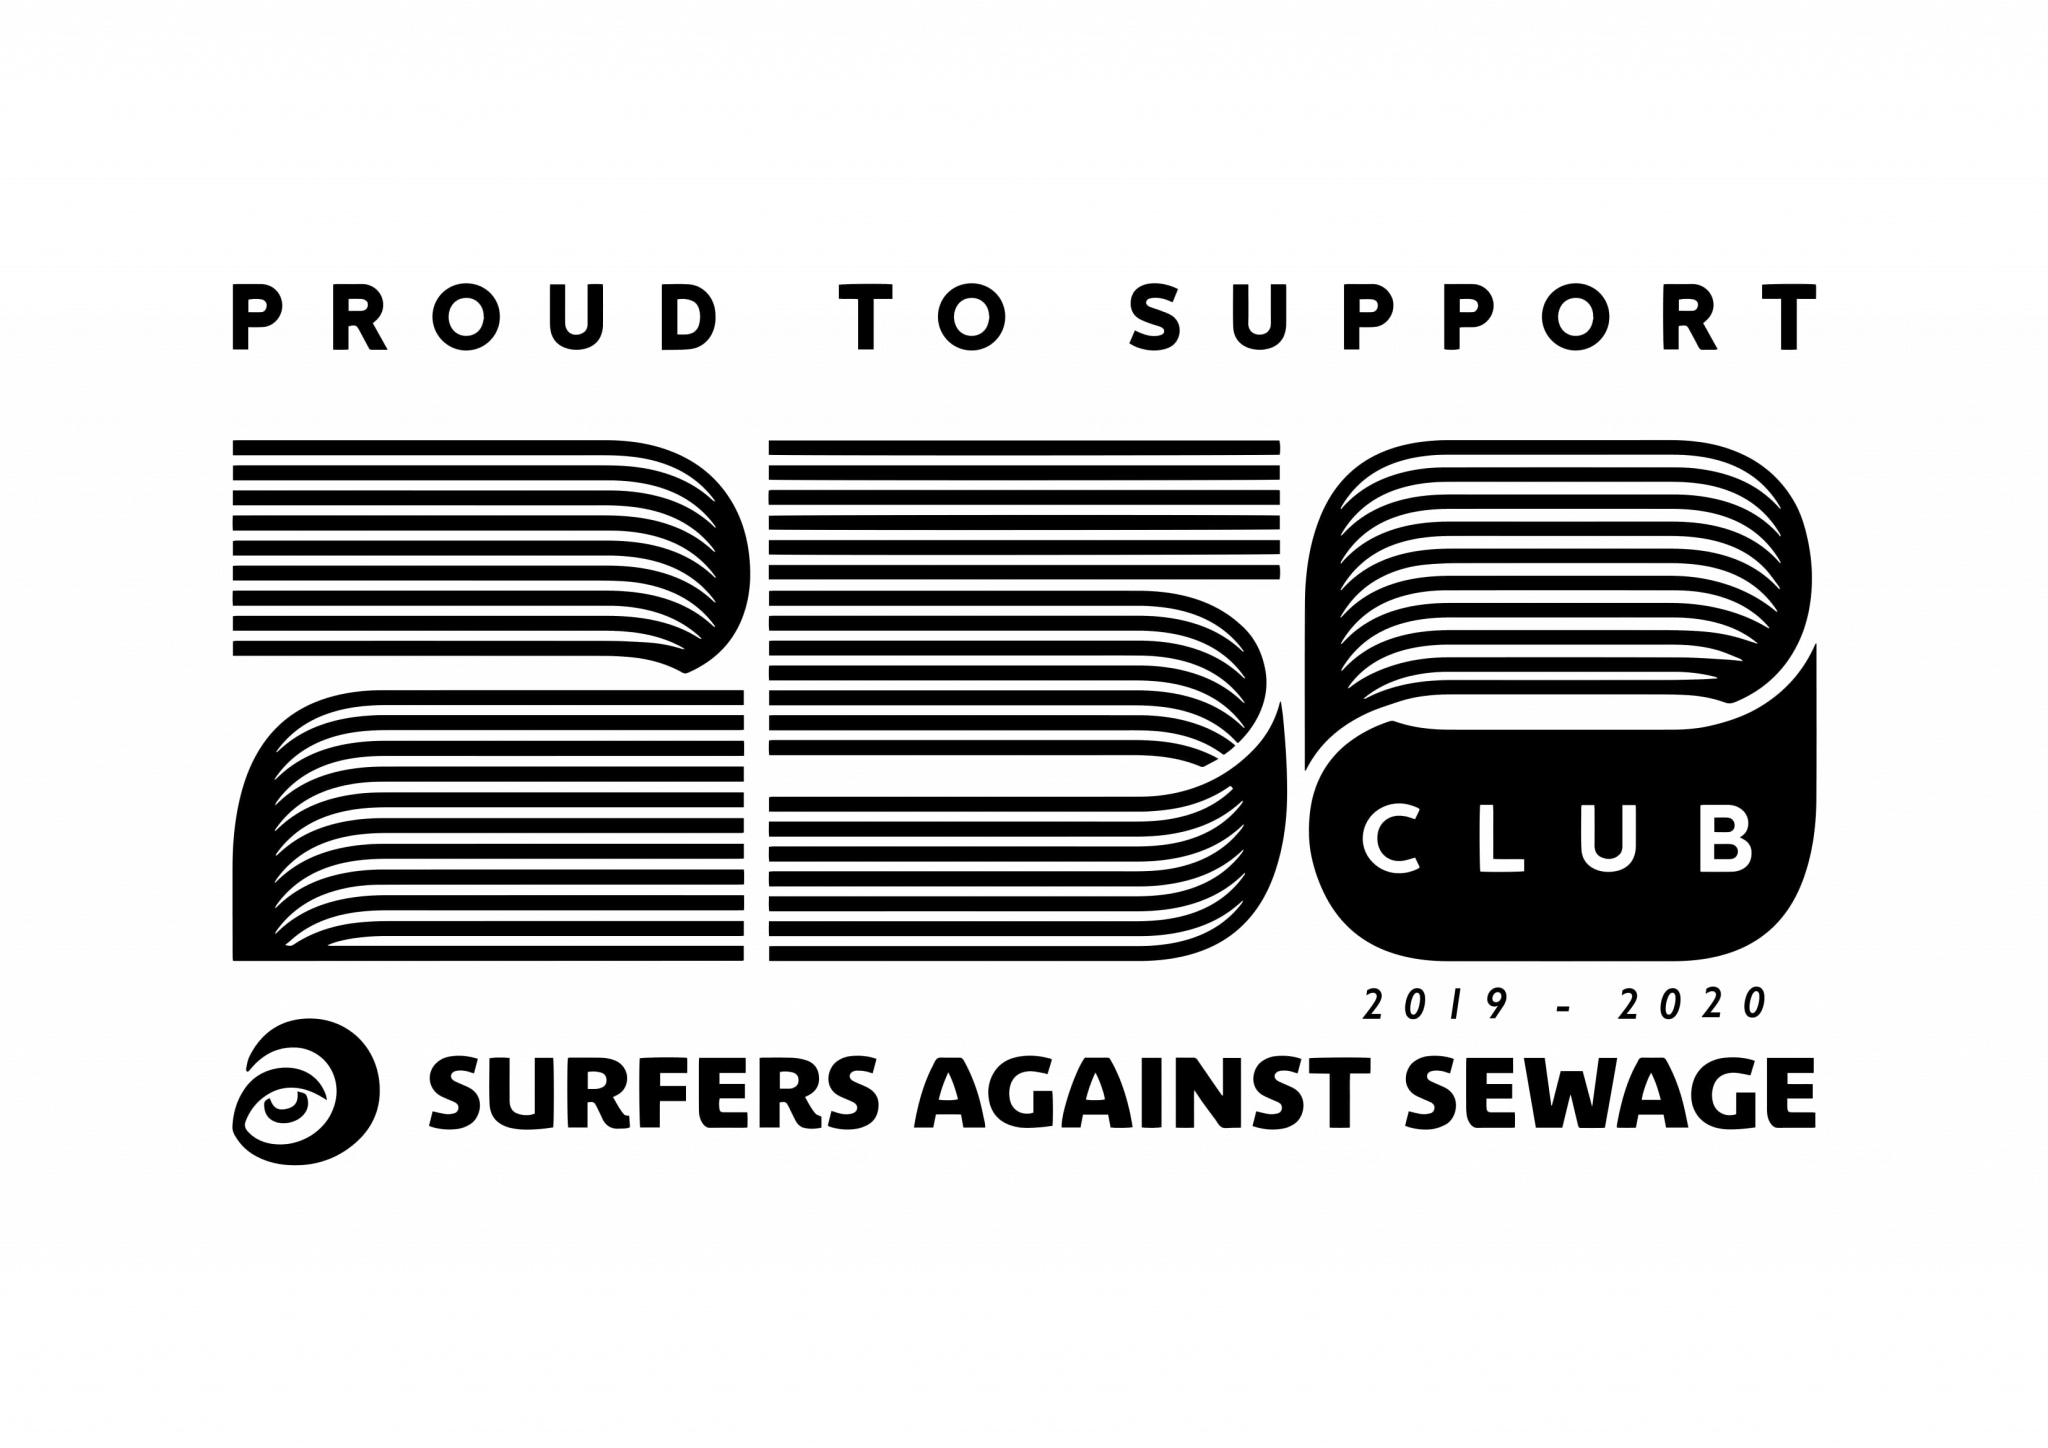 surfers against sewage logo | sustainable communication partnership 1